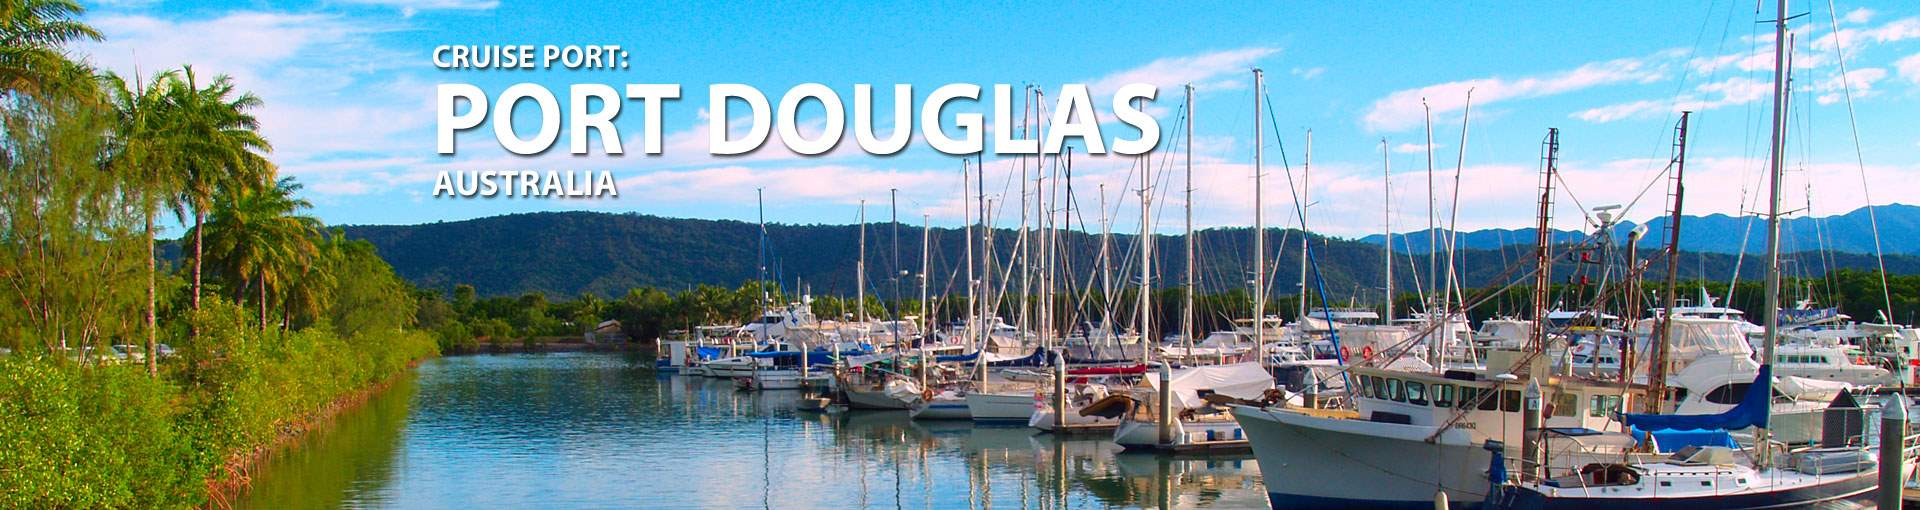 Cruises to Port Douglas, Australia